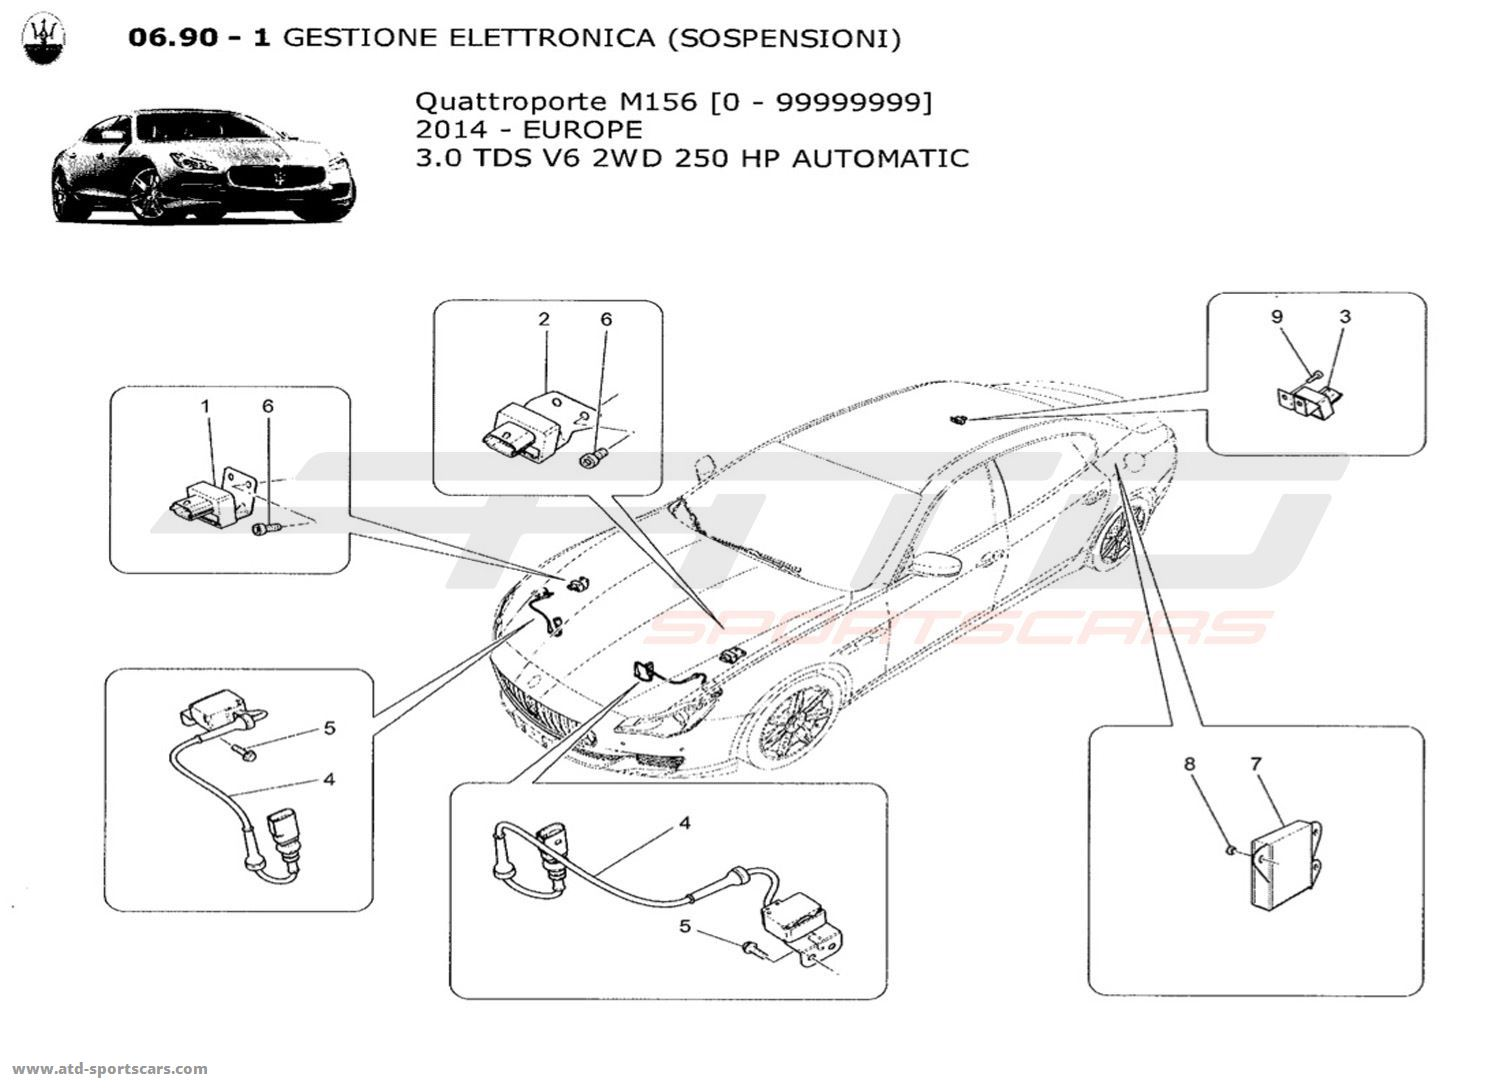 3. ELECTRONIC CONTROL (SUSPENSION)